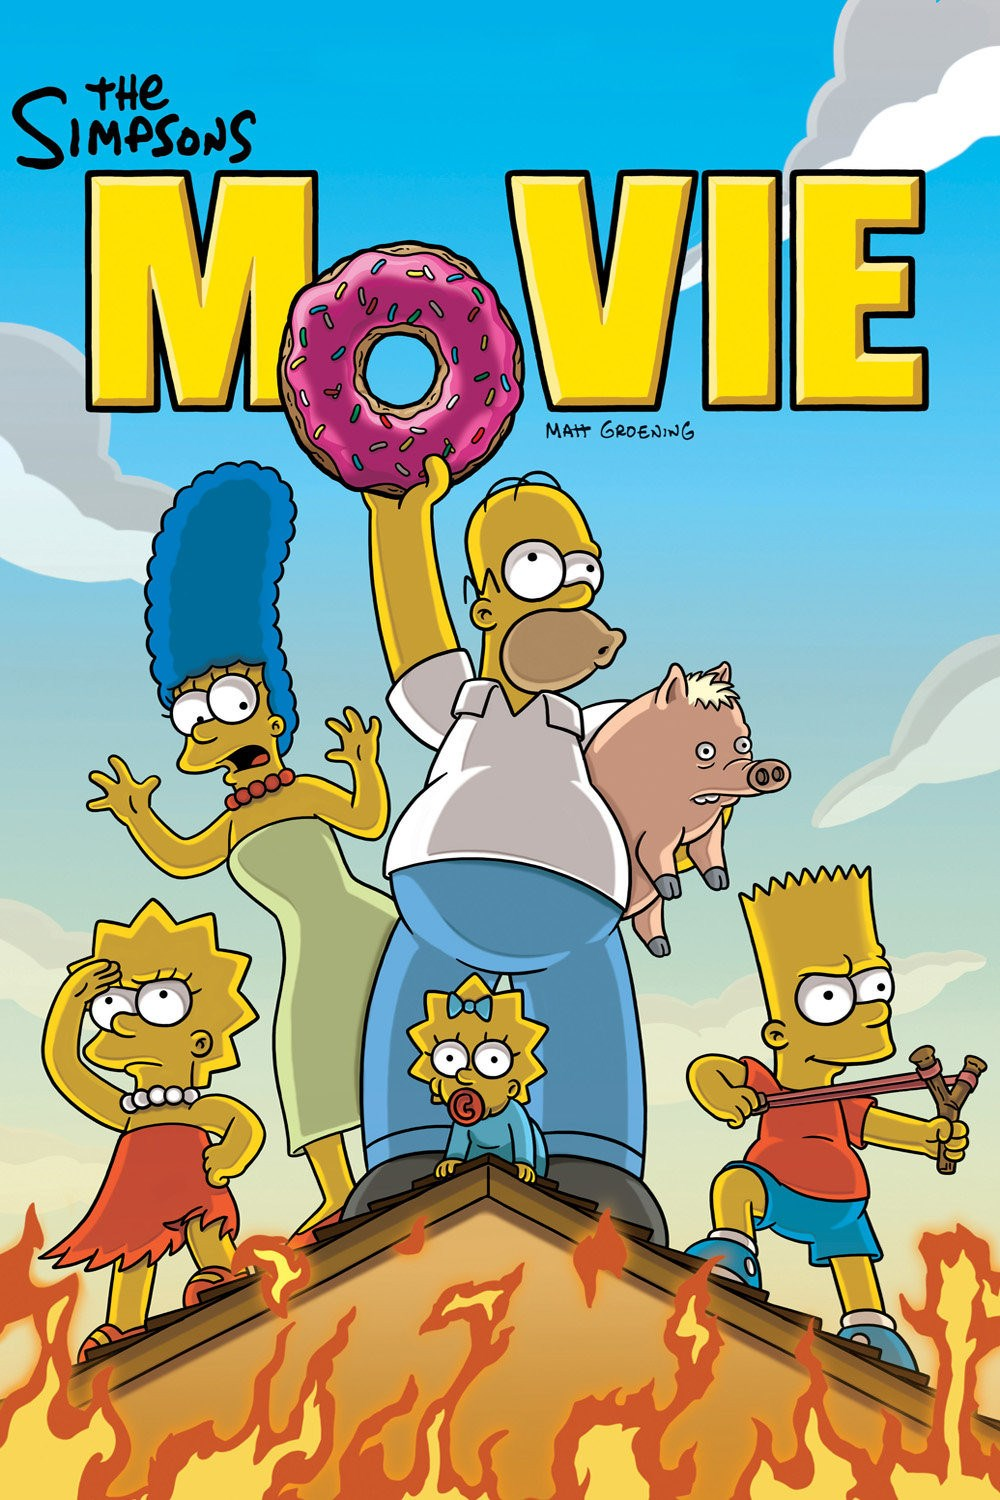 The.simpsons.movie 2017 dvdrip.ac3 eng axxo english subtitles